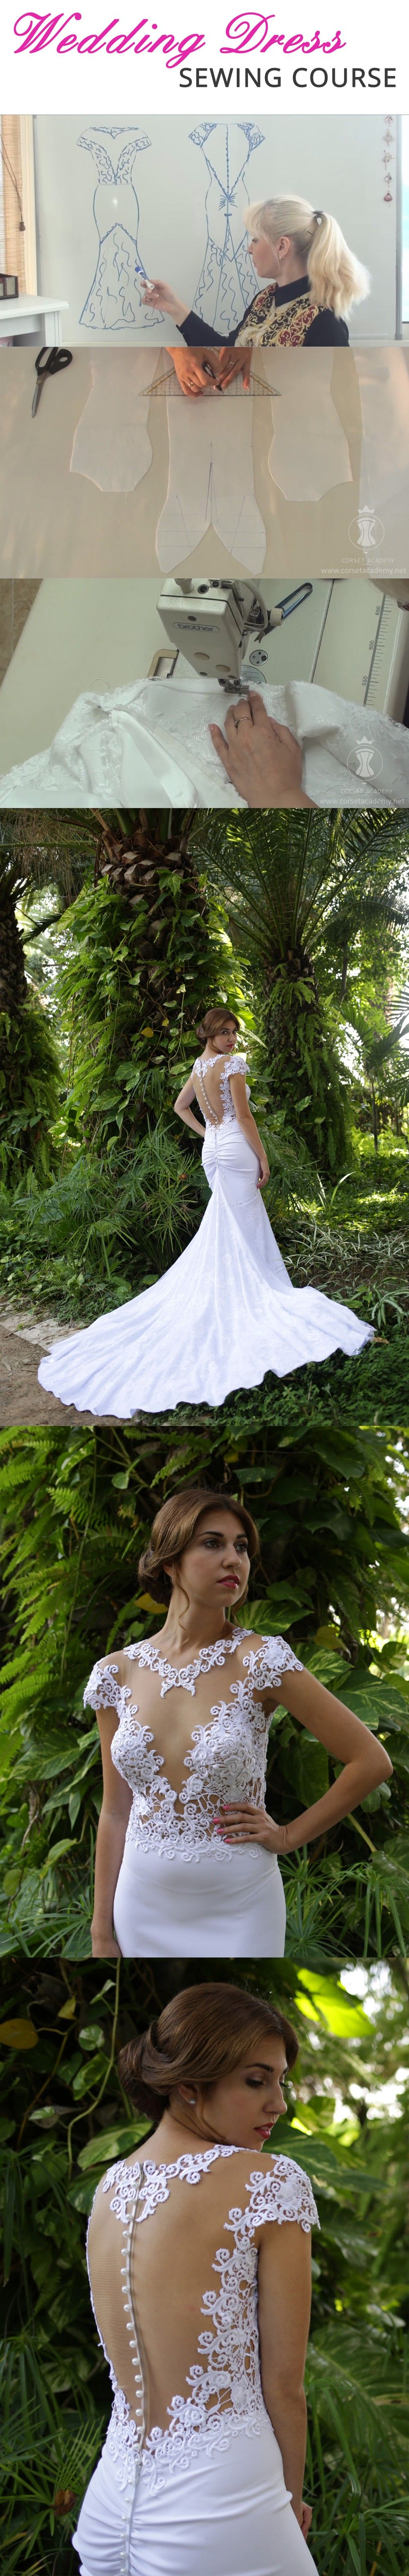 Wedding dress sewing course. How to make a wedding dress